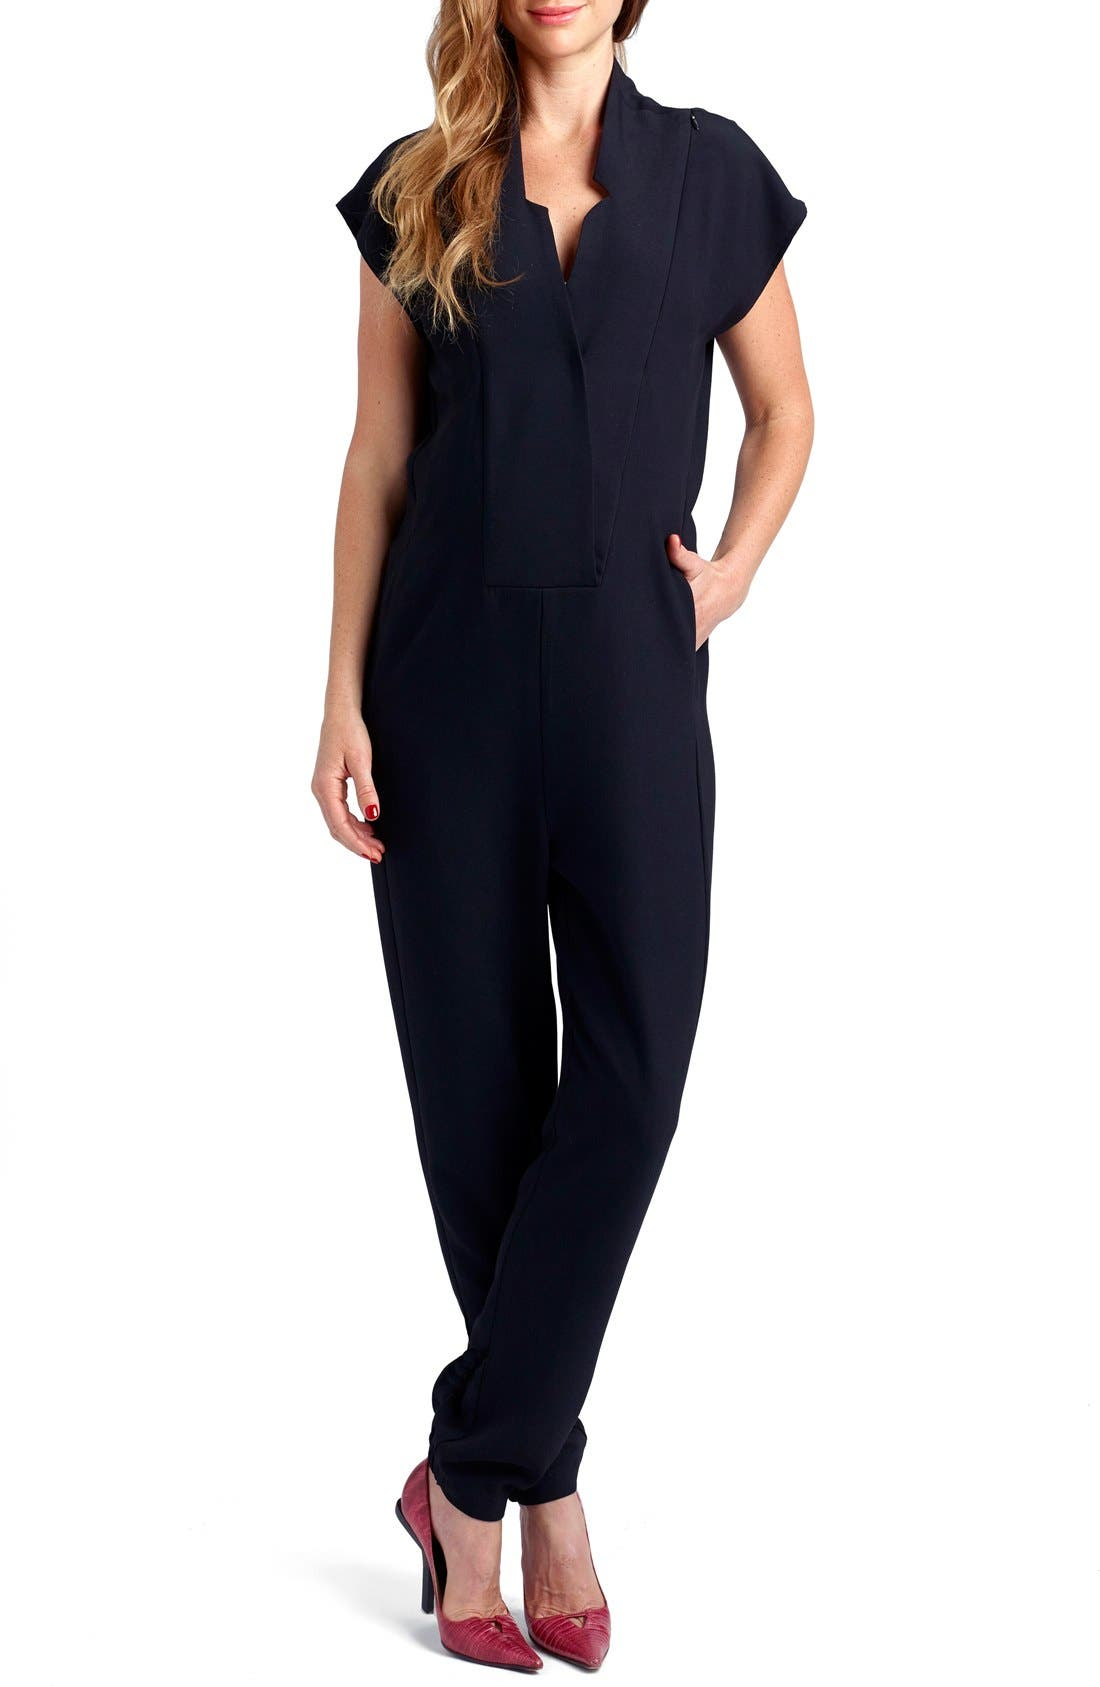 LOYAL HANA 'Celia' Short Sleeve Maternity Jumpsuit